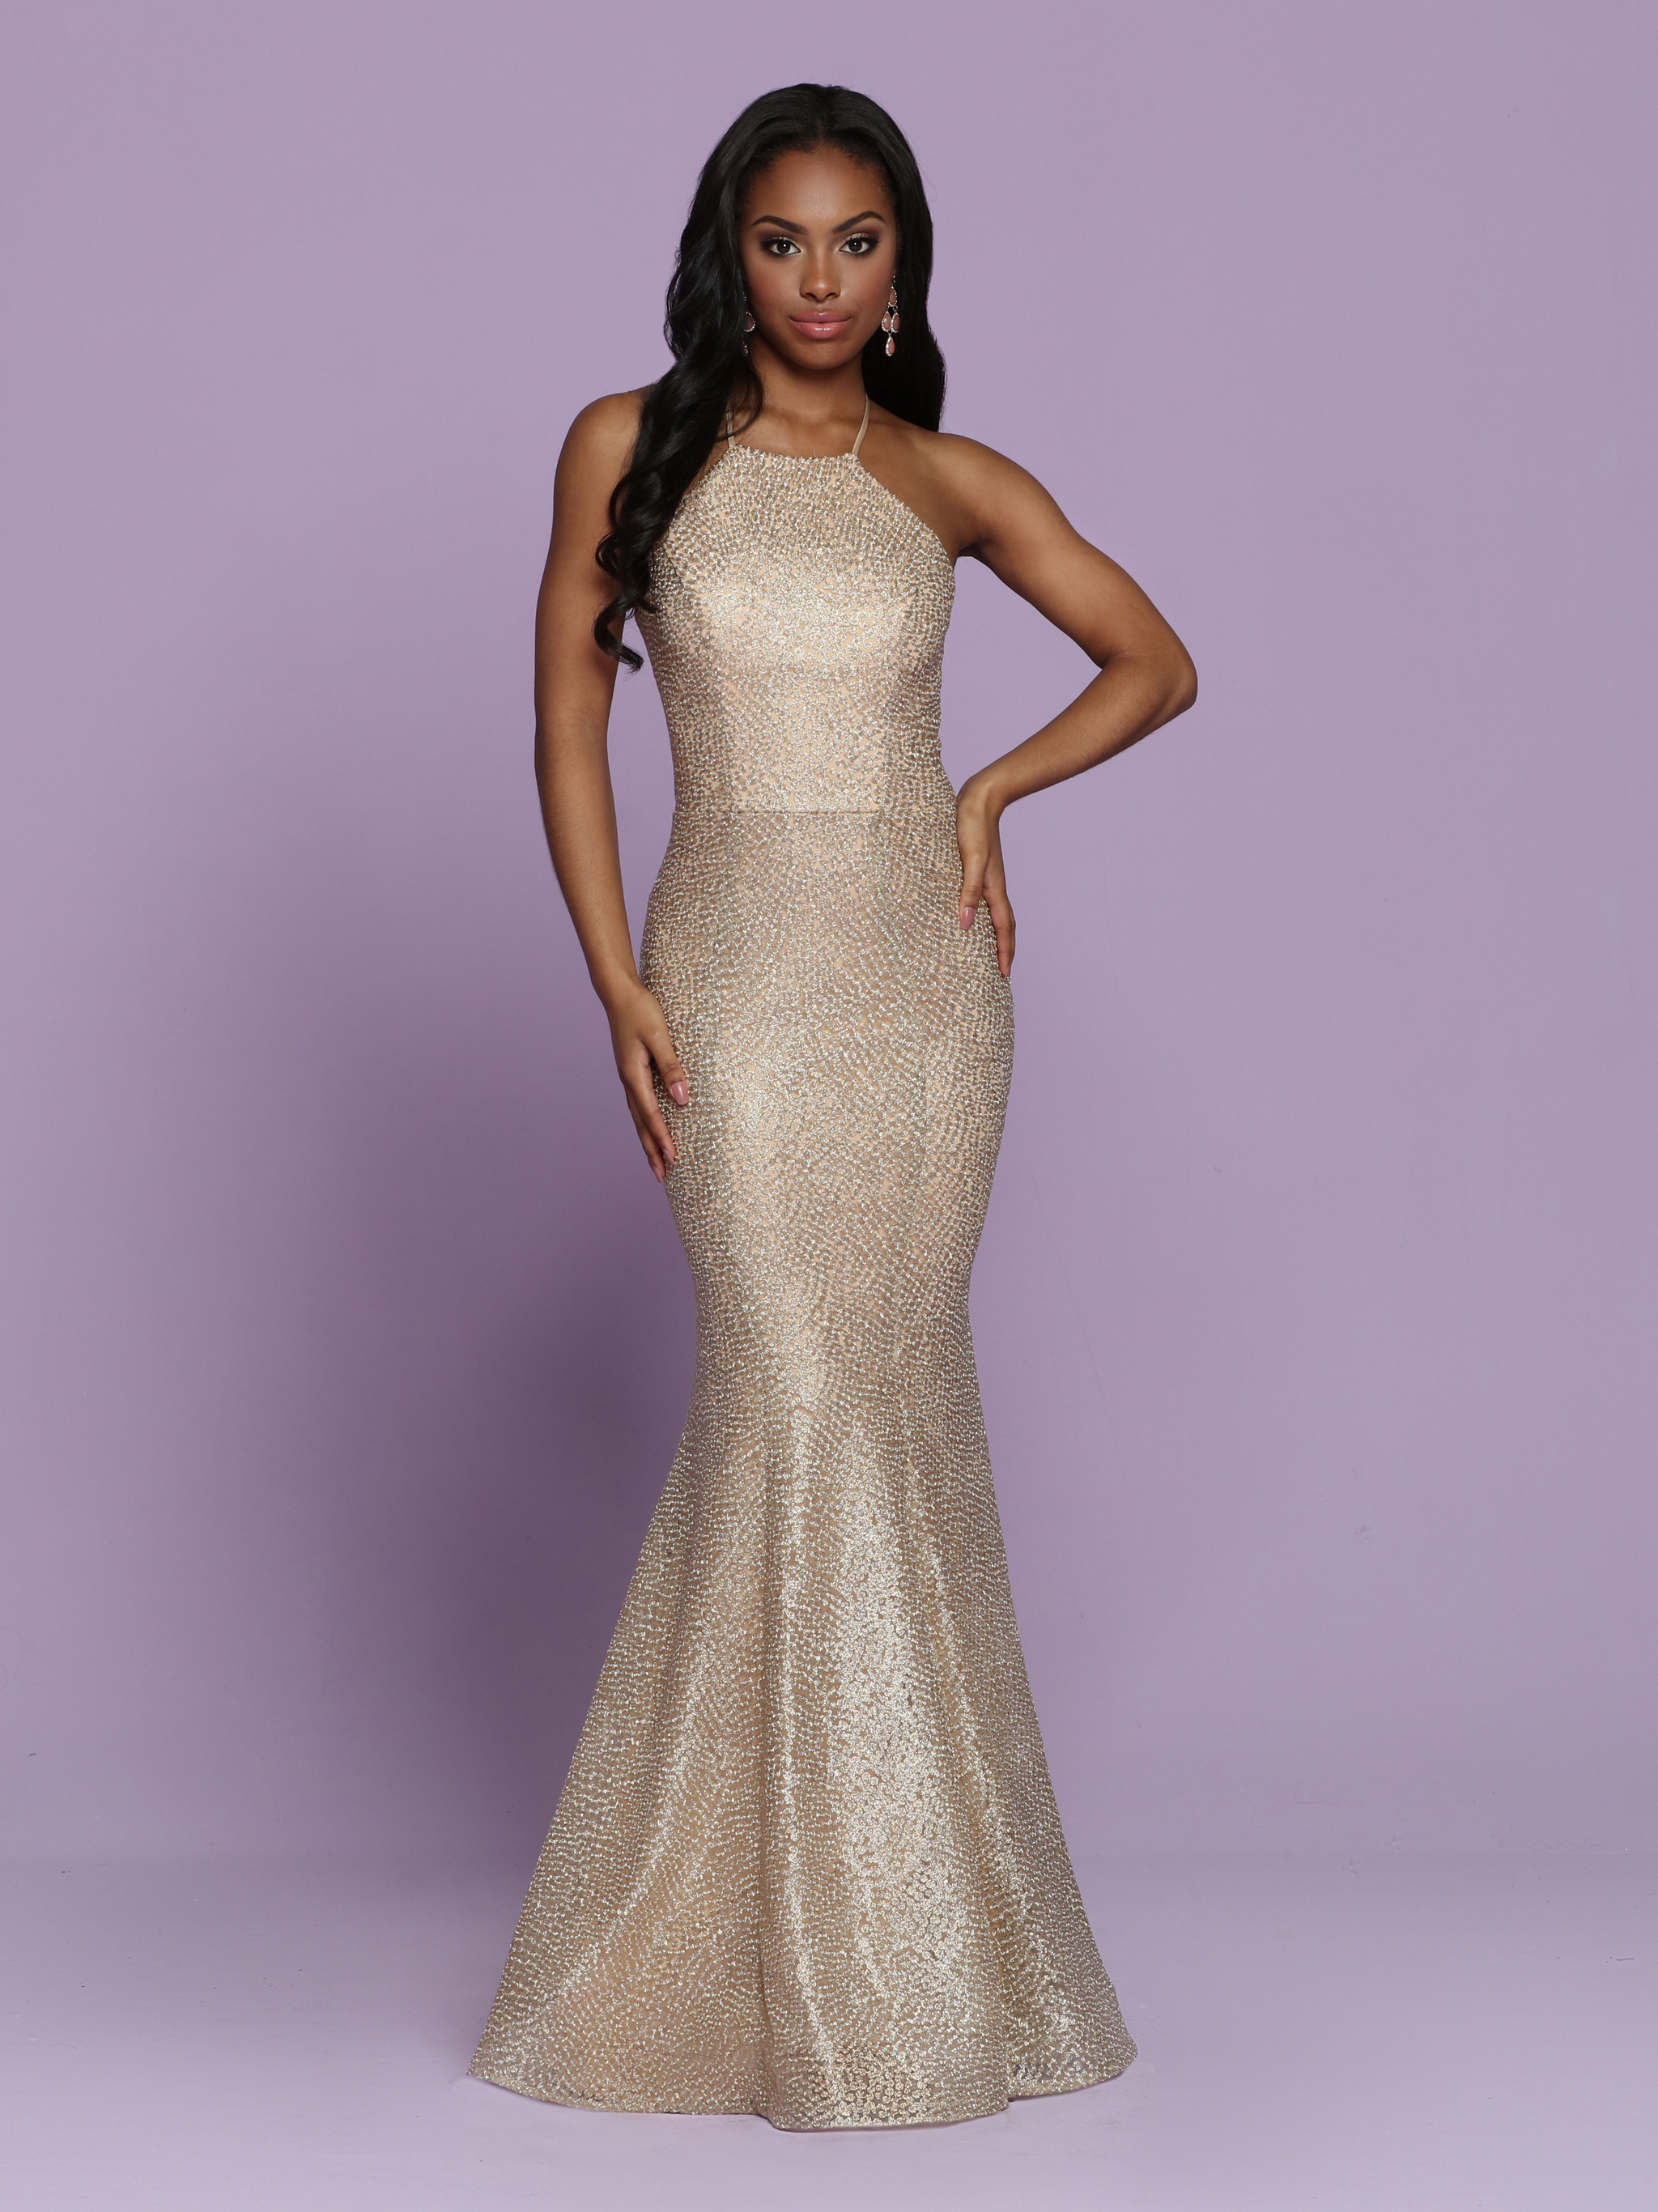 2020 Prom Dress Trends Gold Gowns – Sparkle Prom